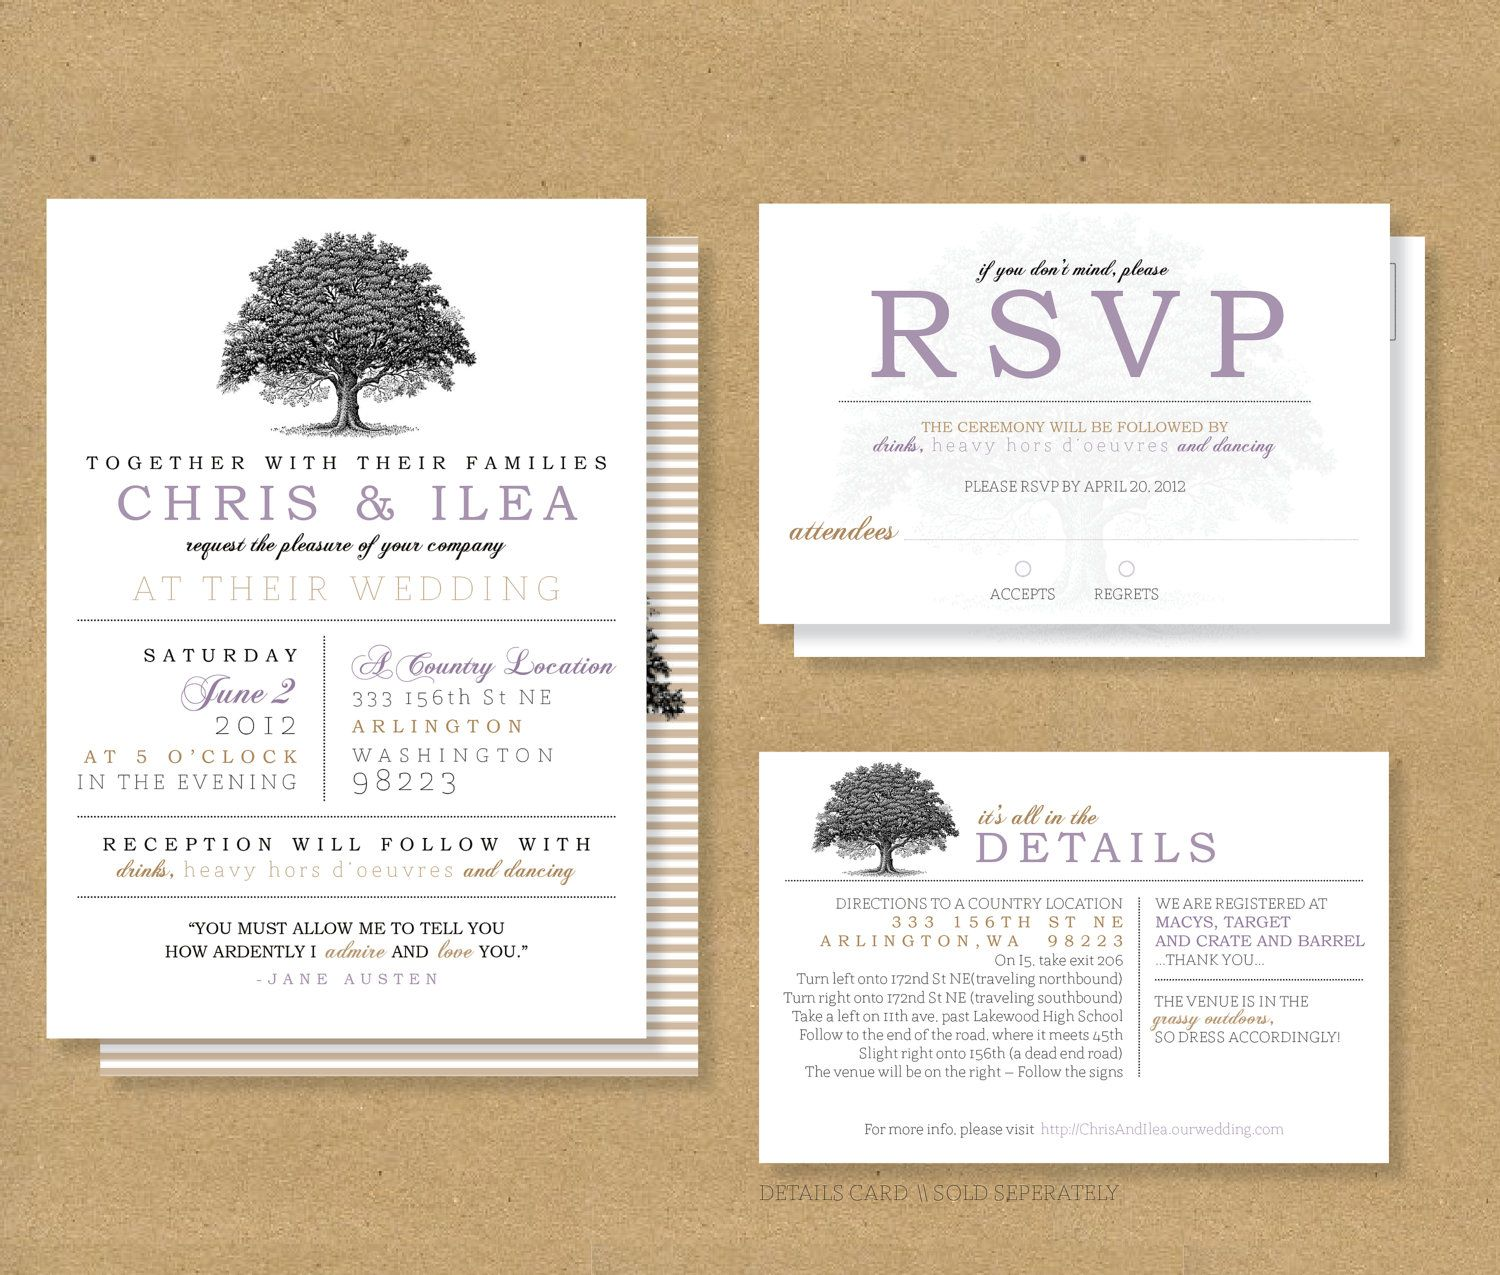 Wedding invitationwedding rsvp wording samples tips wedding rsvp wording for yourwedding rsvp for Wedding rsvp templates